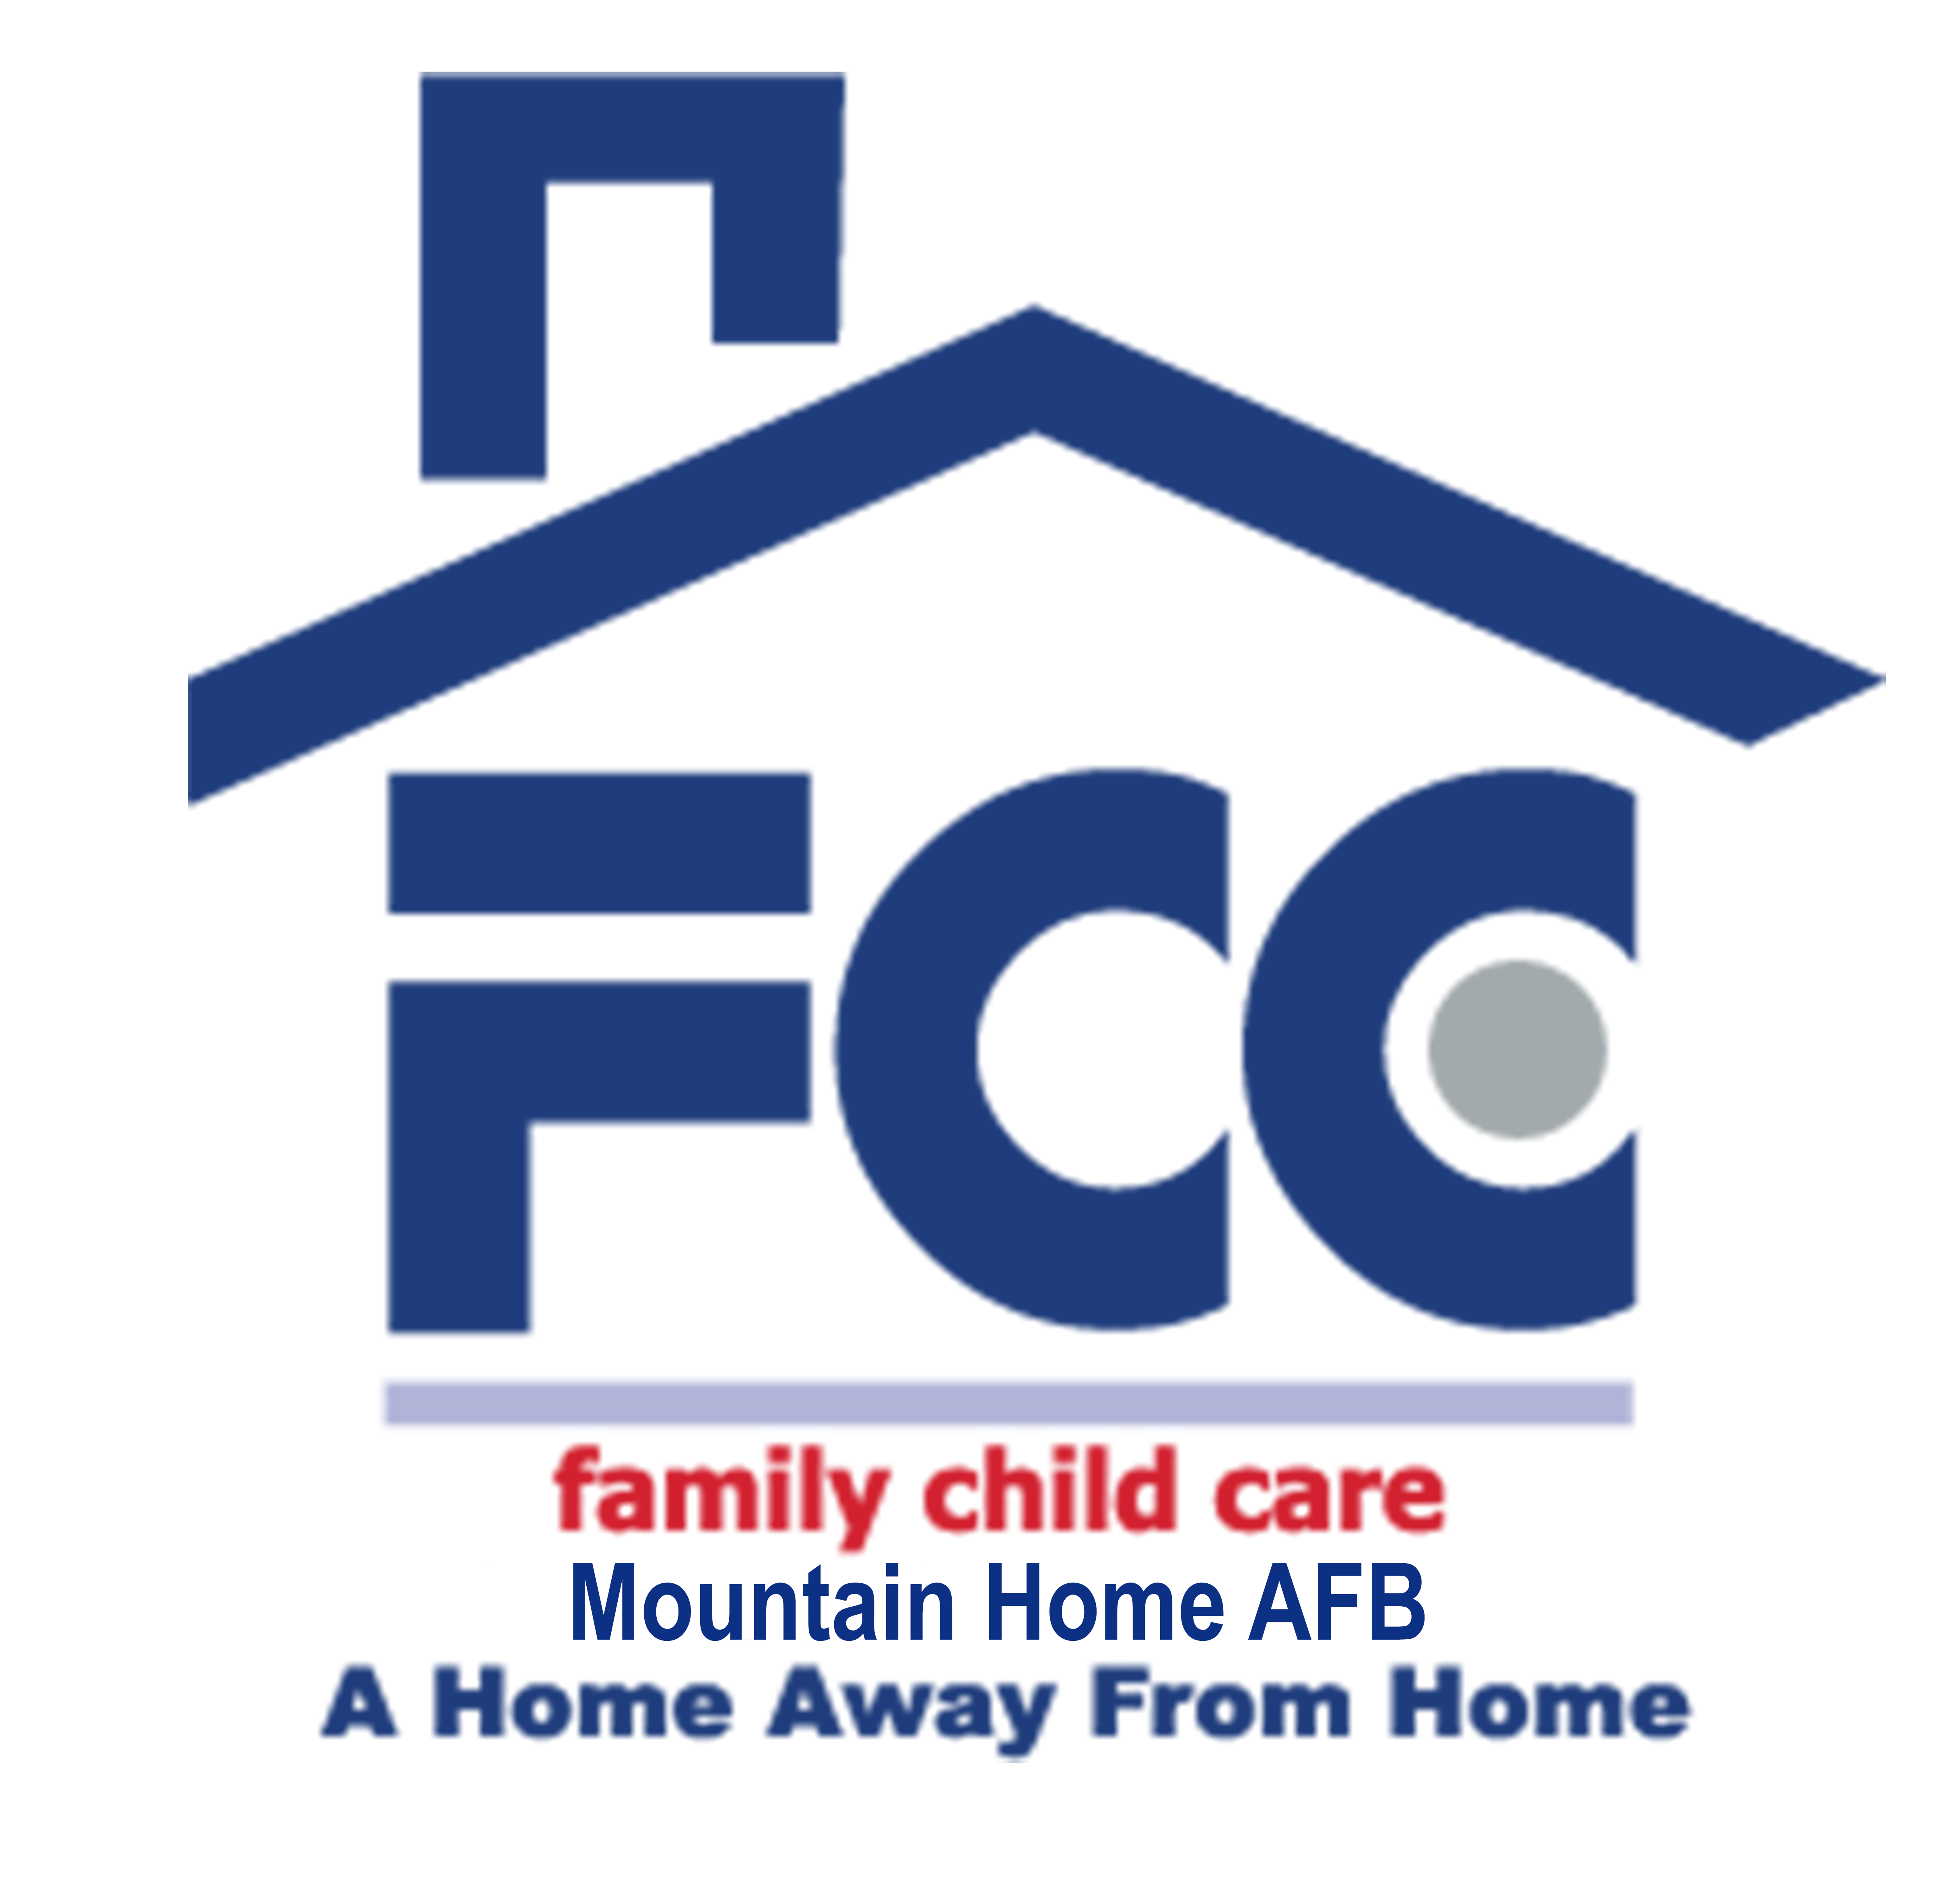 Family Child Cre logo